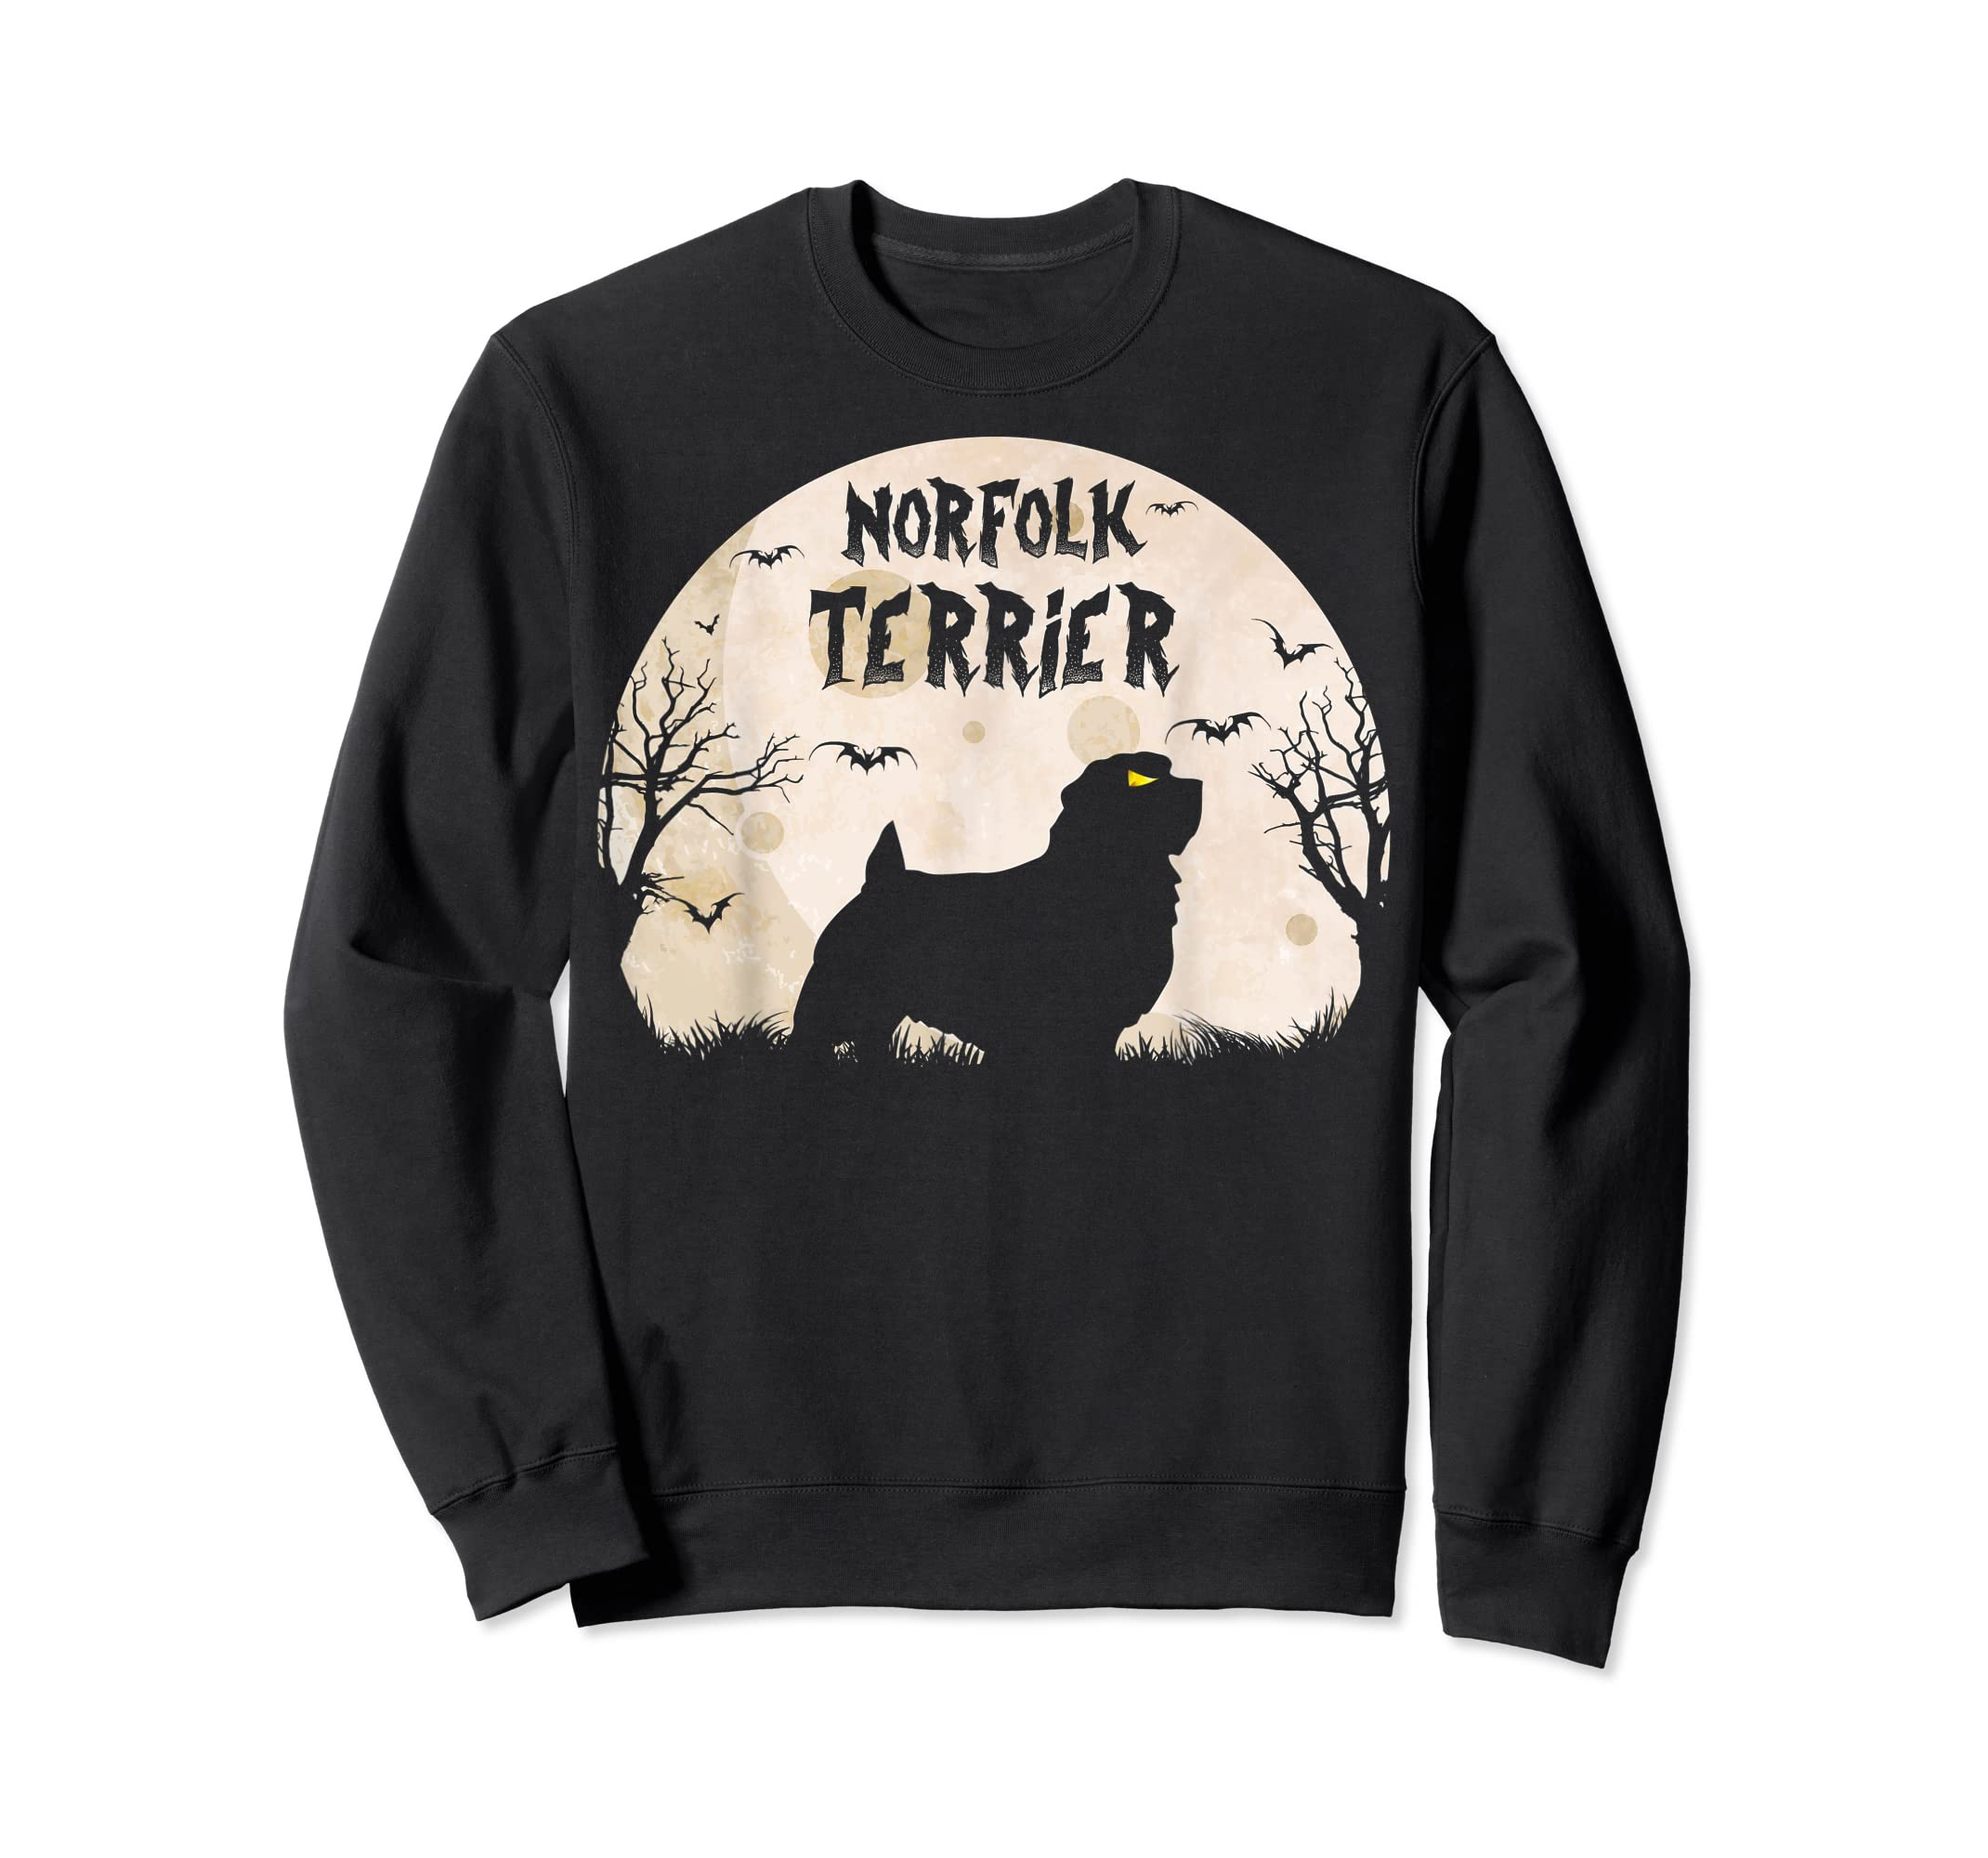 Halloween Horror Norfolk Terrier T-Shirt-Sweatshirt-Black